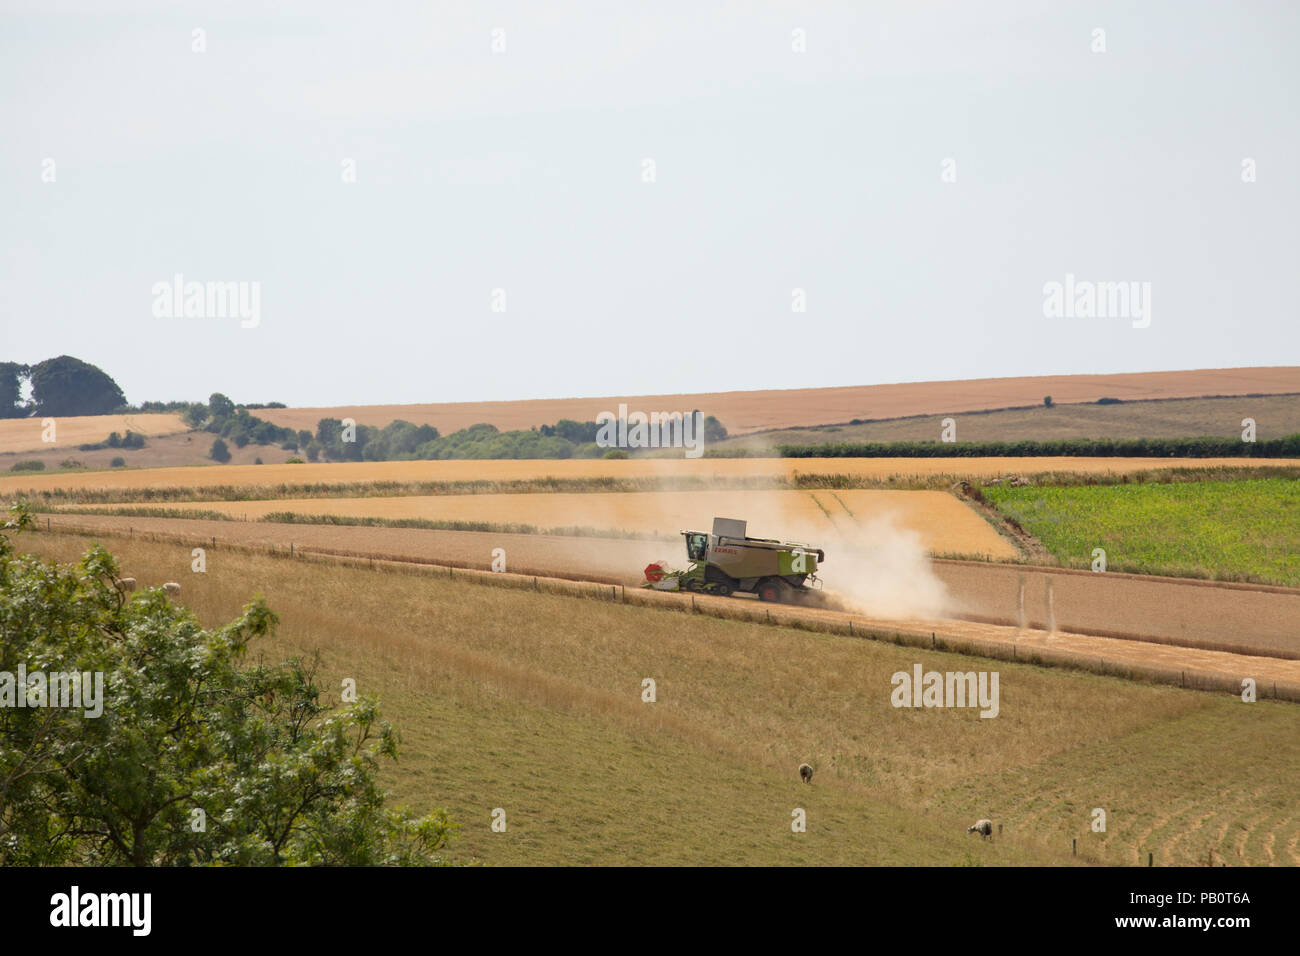 A combine harvester at work during the UK 2018 heatwave  in Wiltshire England UK GB - Stock Image